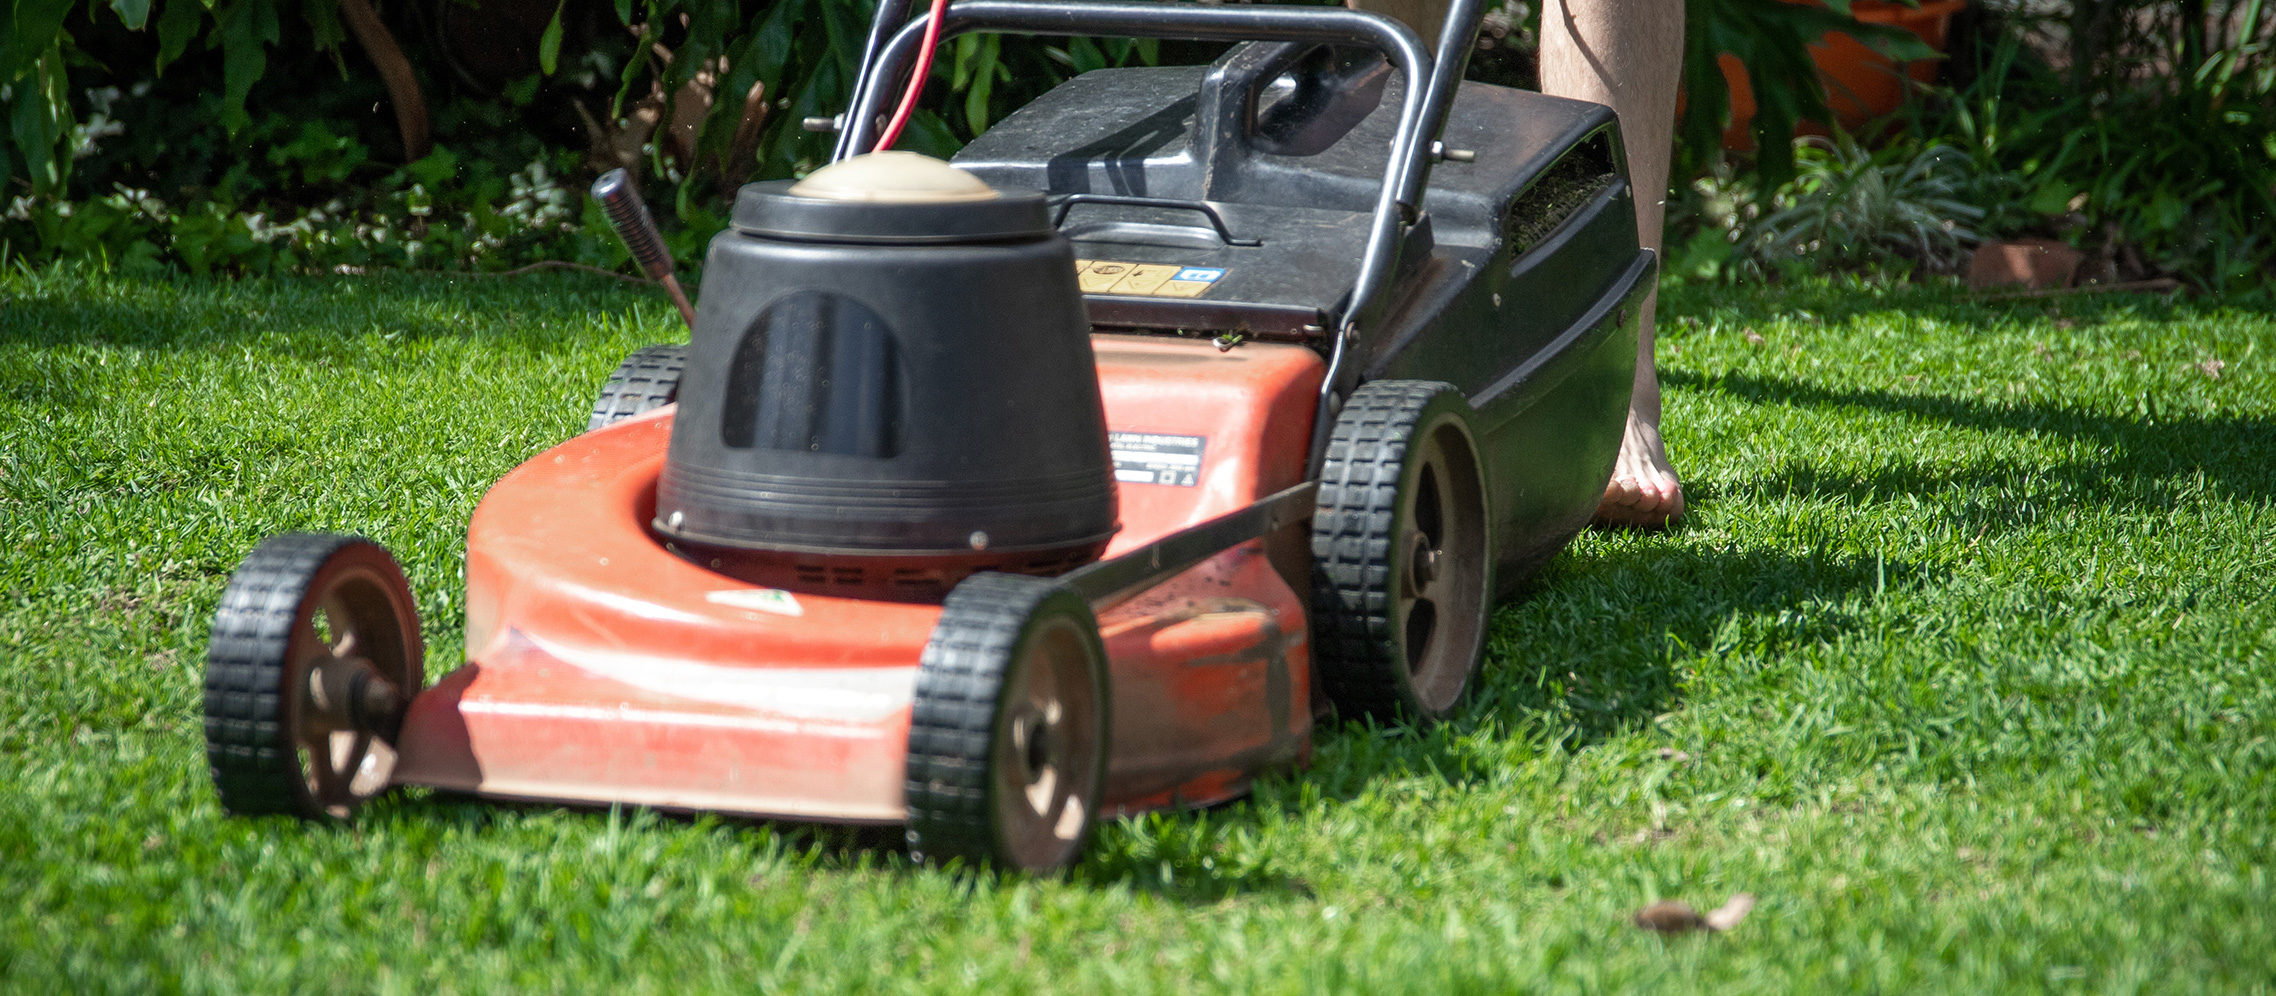 Dull_vs_Sharp_Blades_3_Advantages_of_Sharper_Blades_for_Your_Lawn_Care_Routine_1